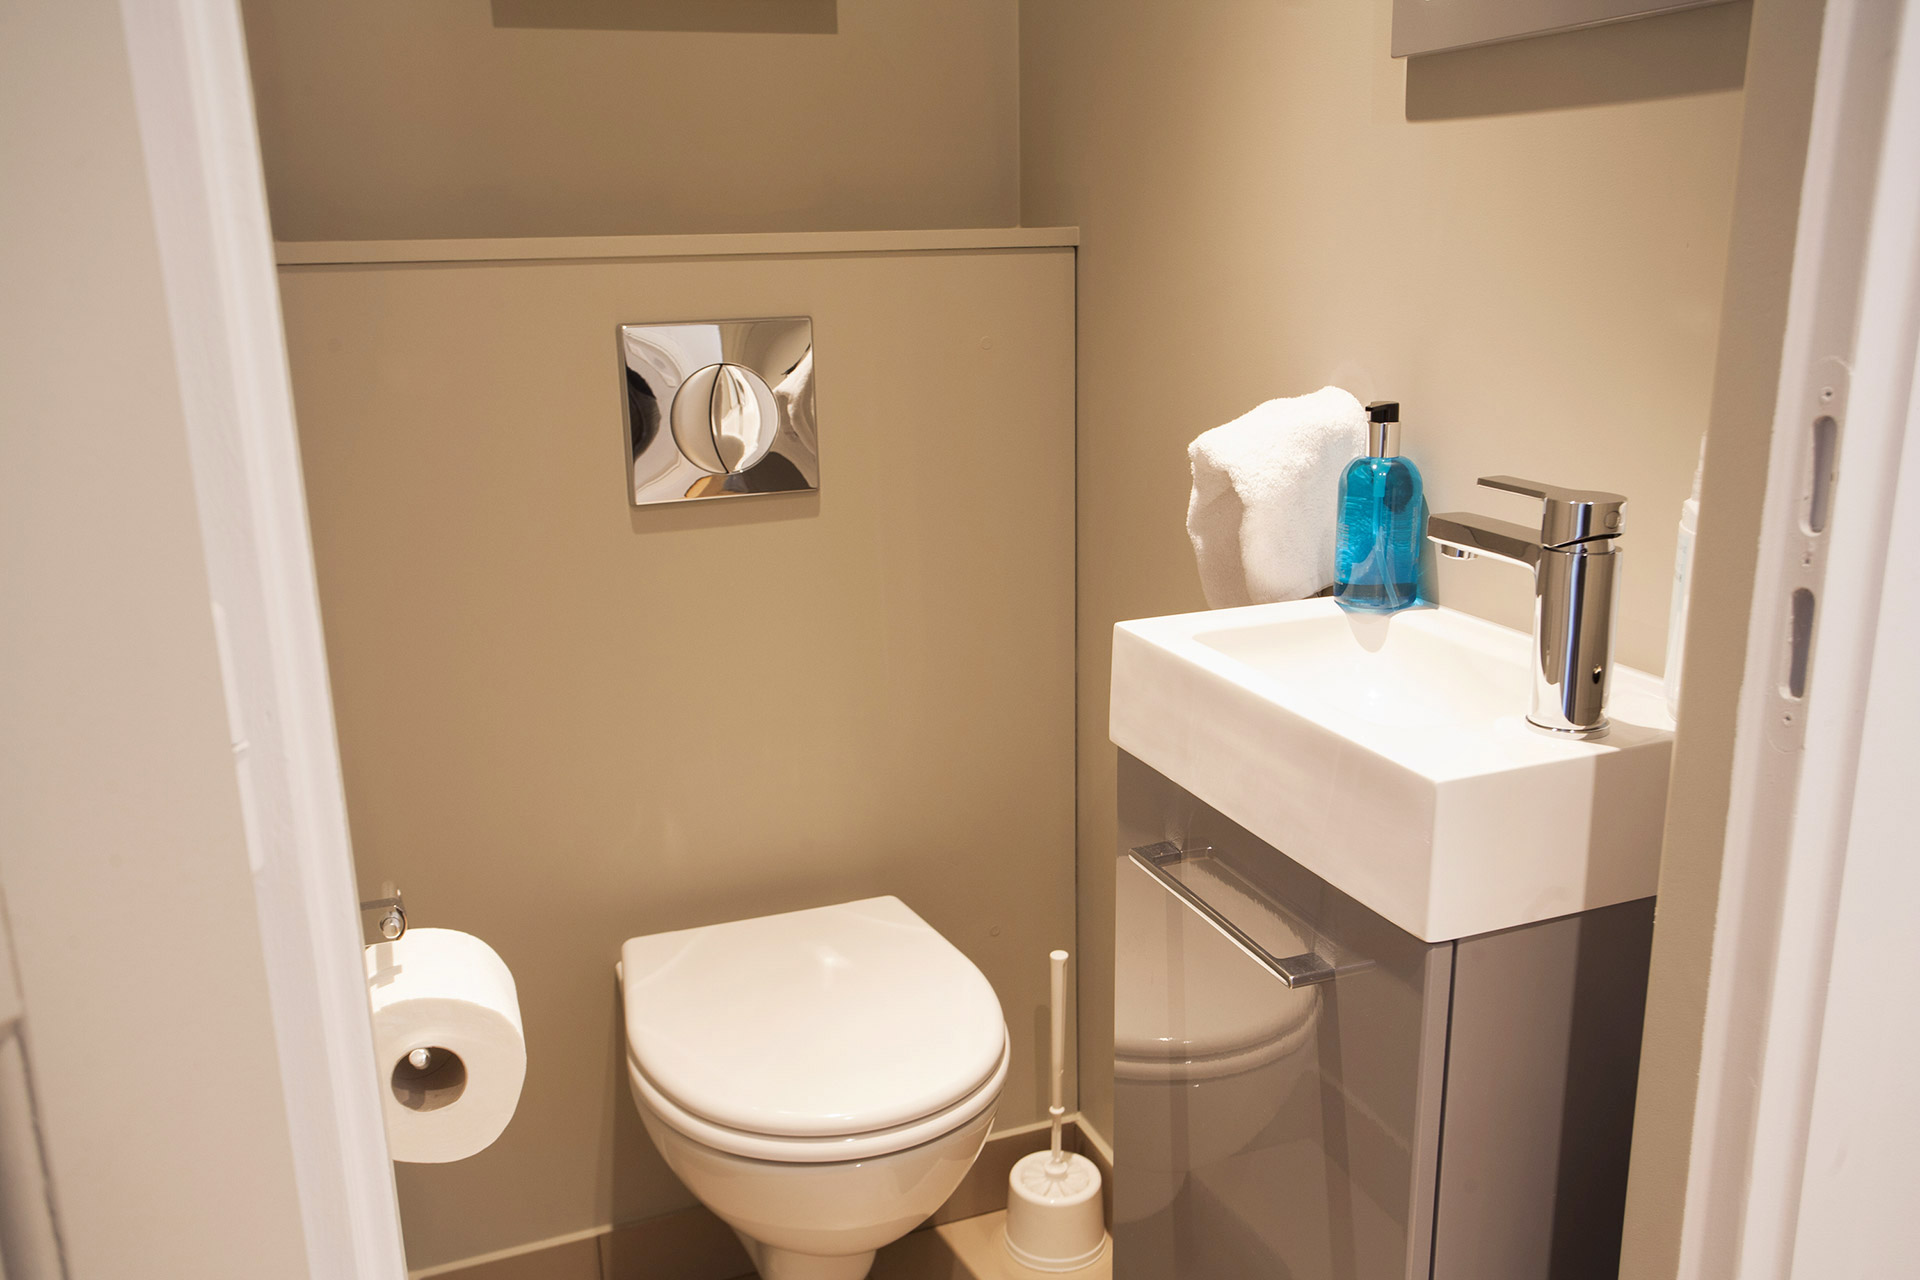 Separate half bath with toilet and basin